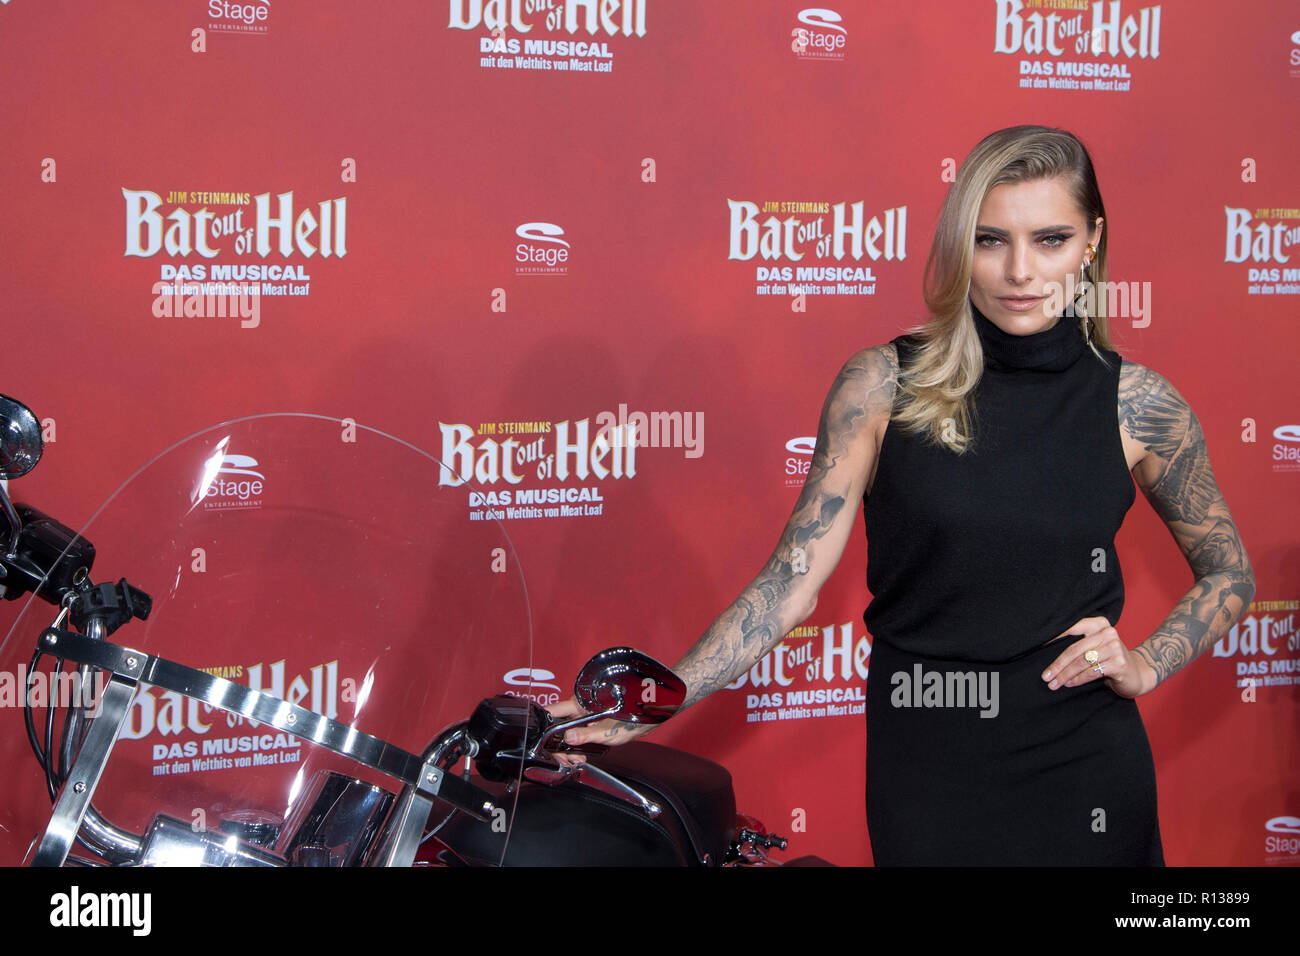 Sophia THOMALLA, actress, red carpet, Red Carpet Show, Germany premiere of the musical 'Bat out of Hell' at the Metronom Theater in Oberhausen, 08.11.2018, | usage worldwide - Stock Image